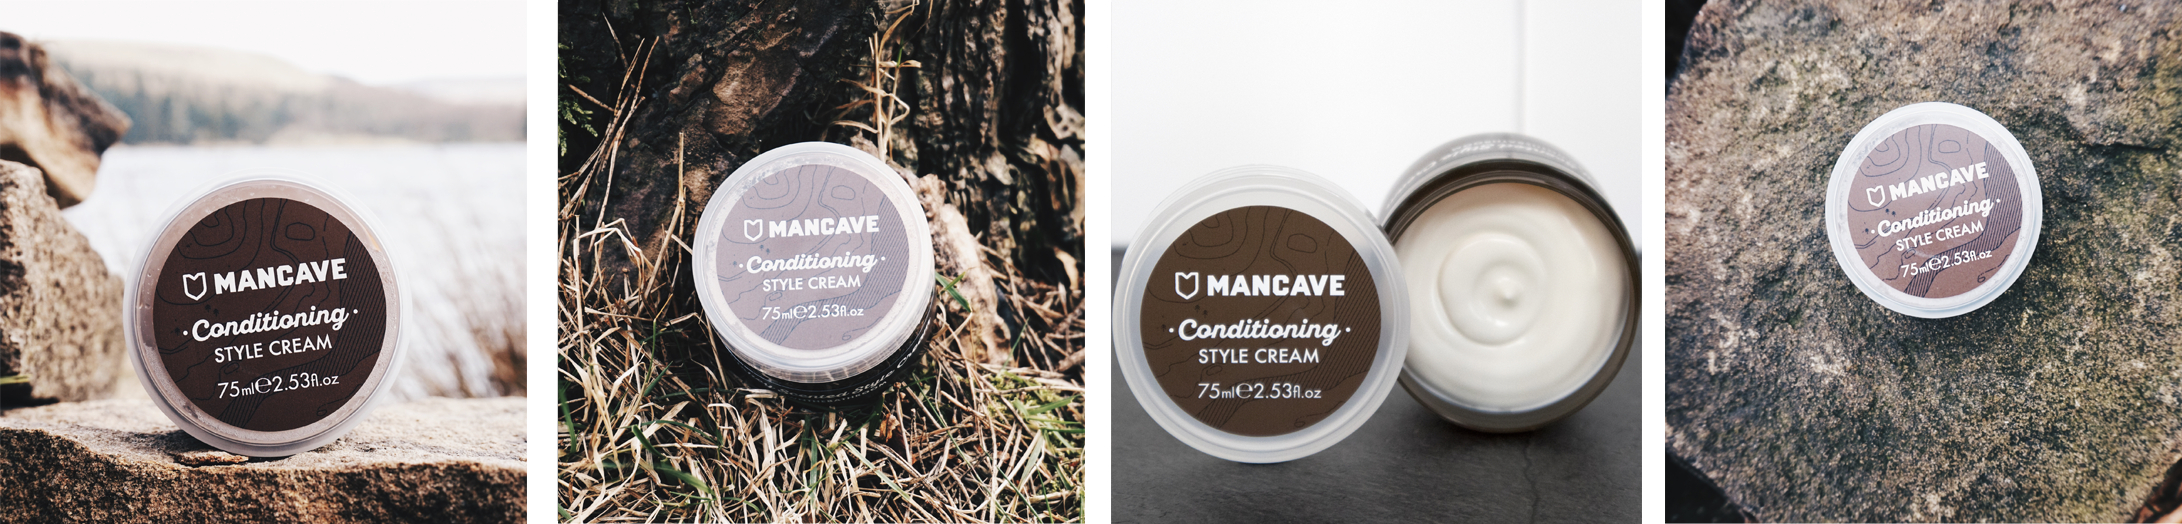 A selection of four lifestyle images. From left to right, a ManCave conditioning style cream resting on a rock in front of a blue lake, a ManCave conditioning style cream laid on bark and grass, a ManCave conditioning style cream opened standing on a grey surface with a white tiled wall, and a ManCave conditioning style cream on a brightly textured rock